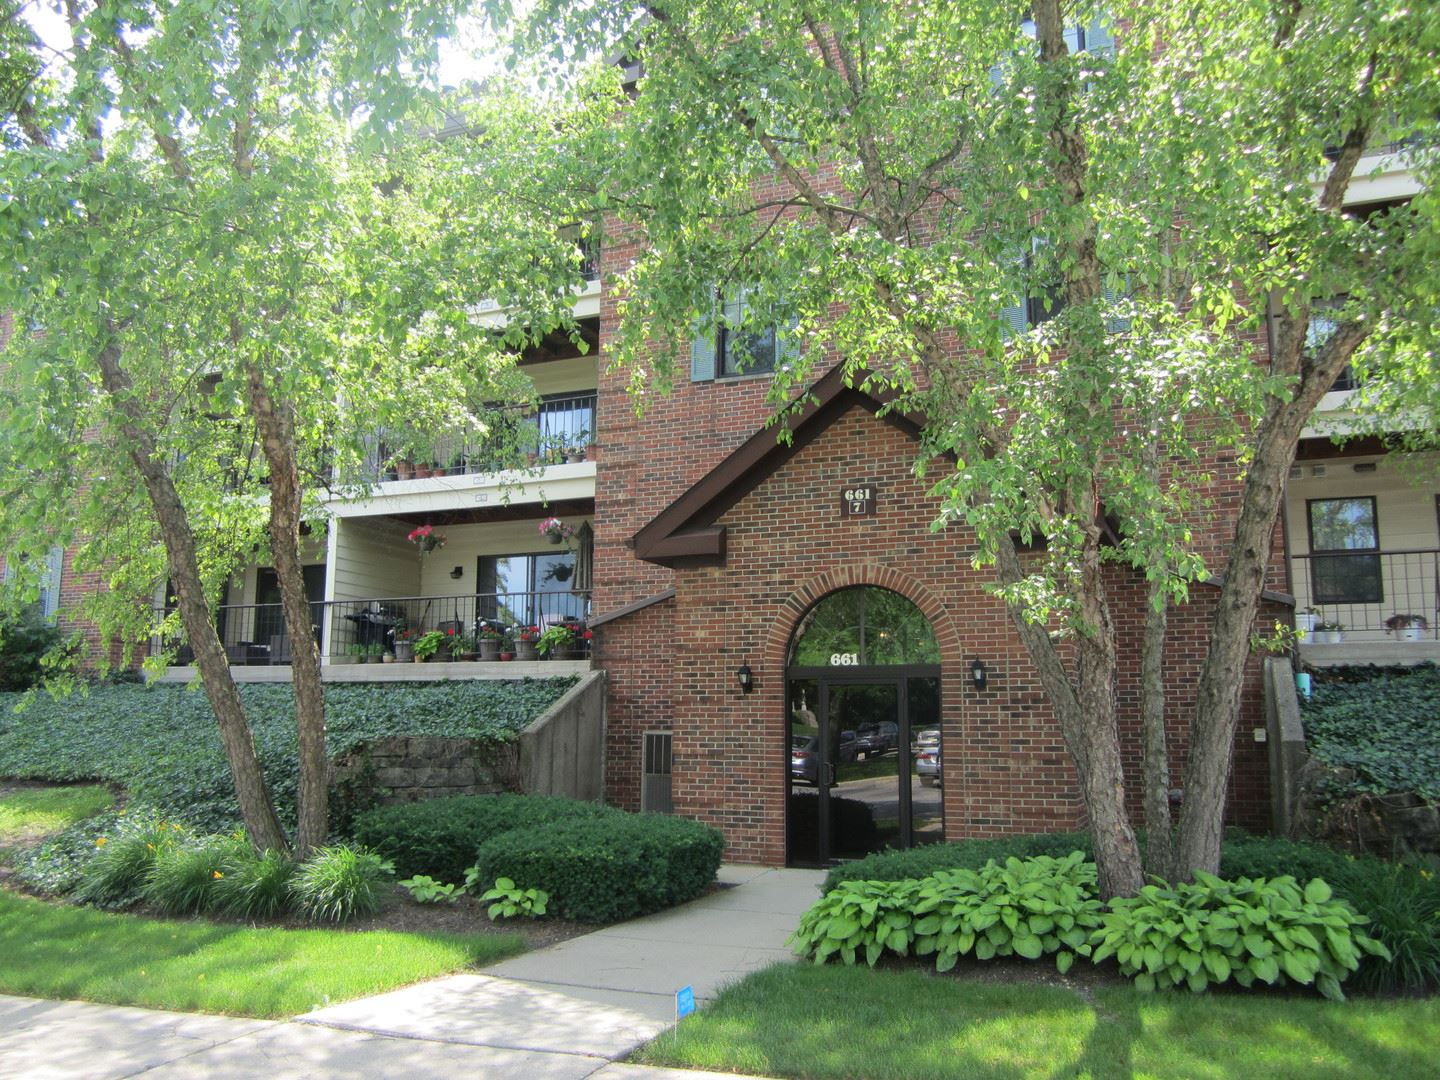 661 HAPSFIELD Lane #200, Buffalo Grove, IL 60089 - #: 10689369